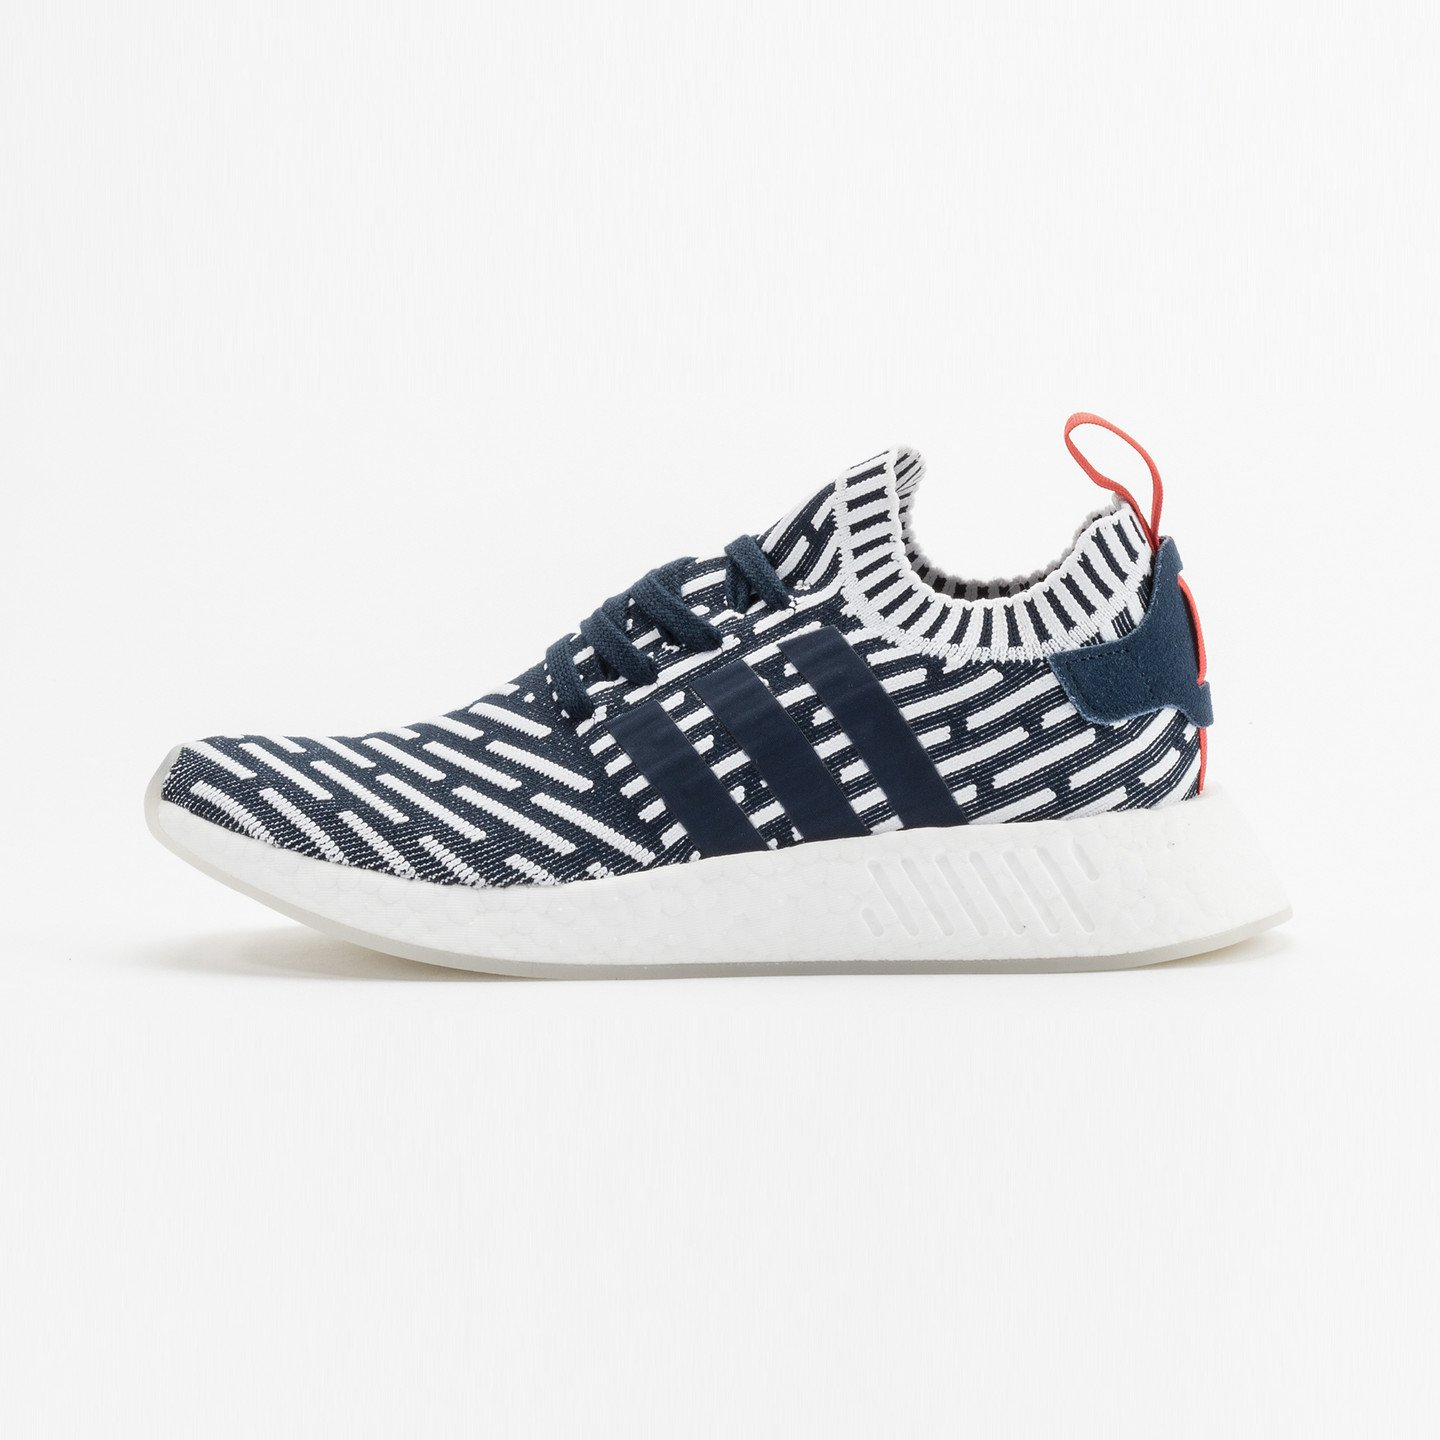 Adidas NMD R2 PK Collegiate Navy / White BB2909-44